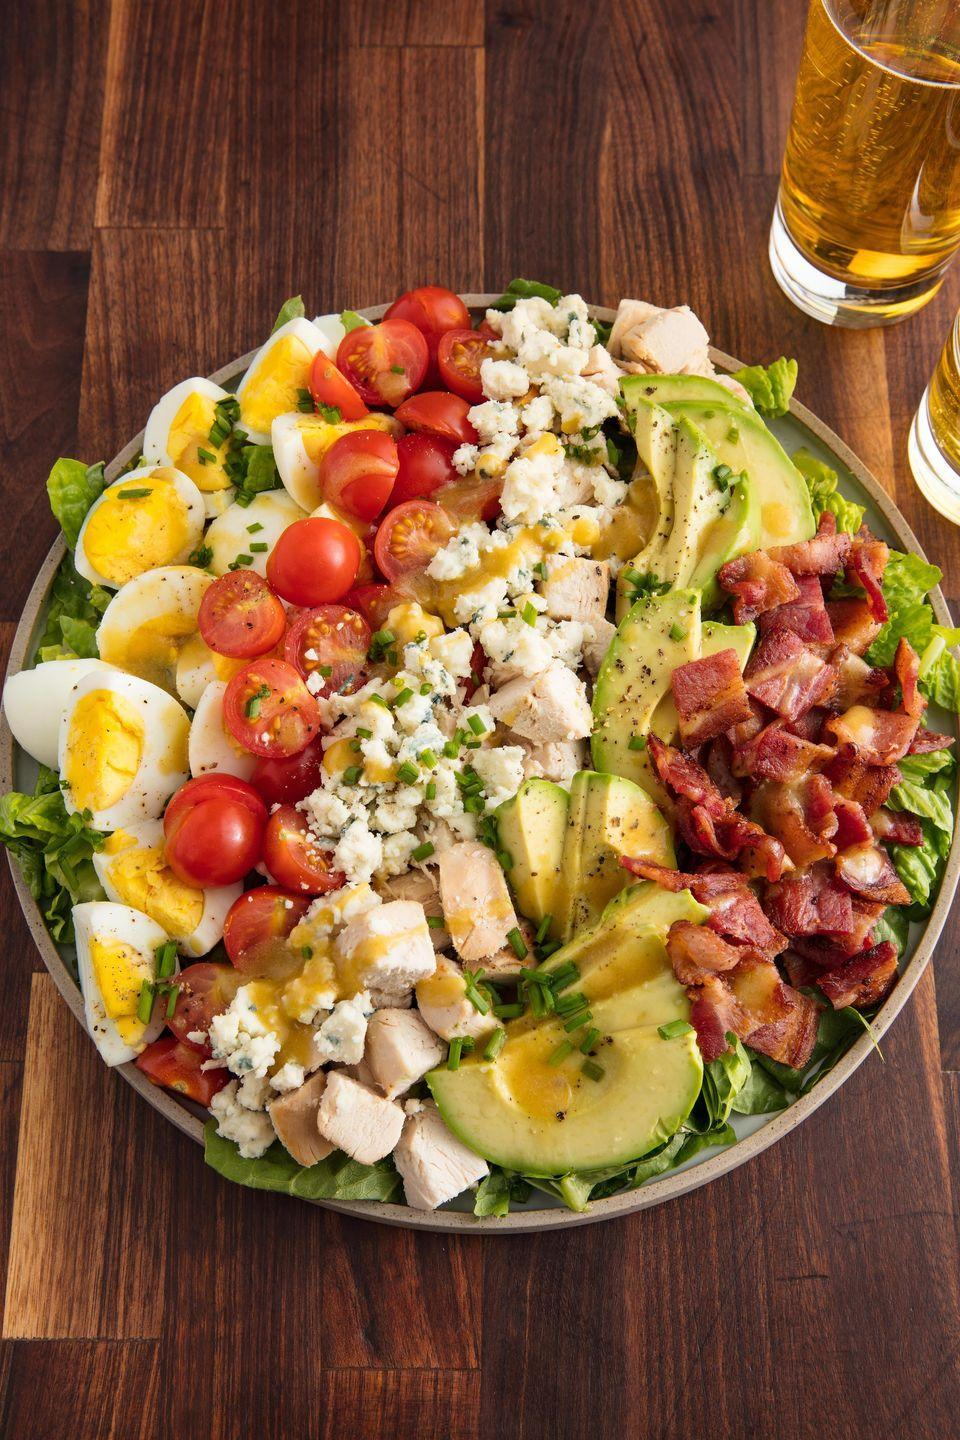 "<p>The salad to rule all salads.</p><p>Get the recipe from <a href=""https://www.delish.com/cooking/recipe-ideas/recipes/a58703/best-cobb-salad-recipe/"" rel=""nofollow noopener"" target=""_blank"" data-ylk=""slk:Delish"" class=""link rapid-noclick-resp"">Delish</a>. </p>"